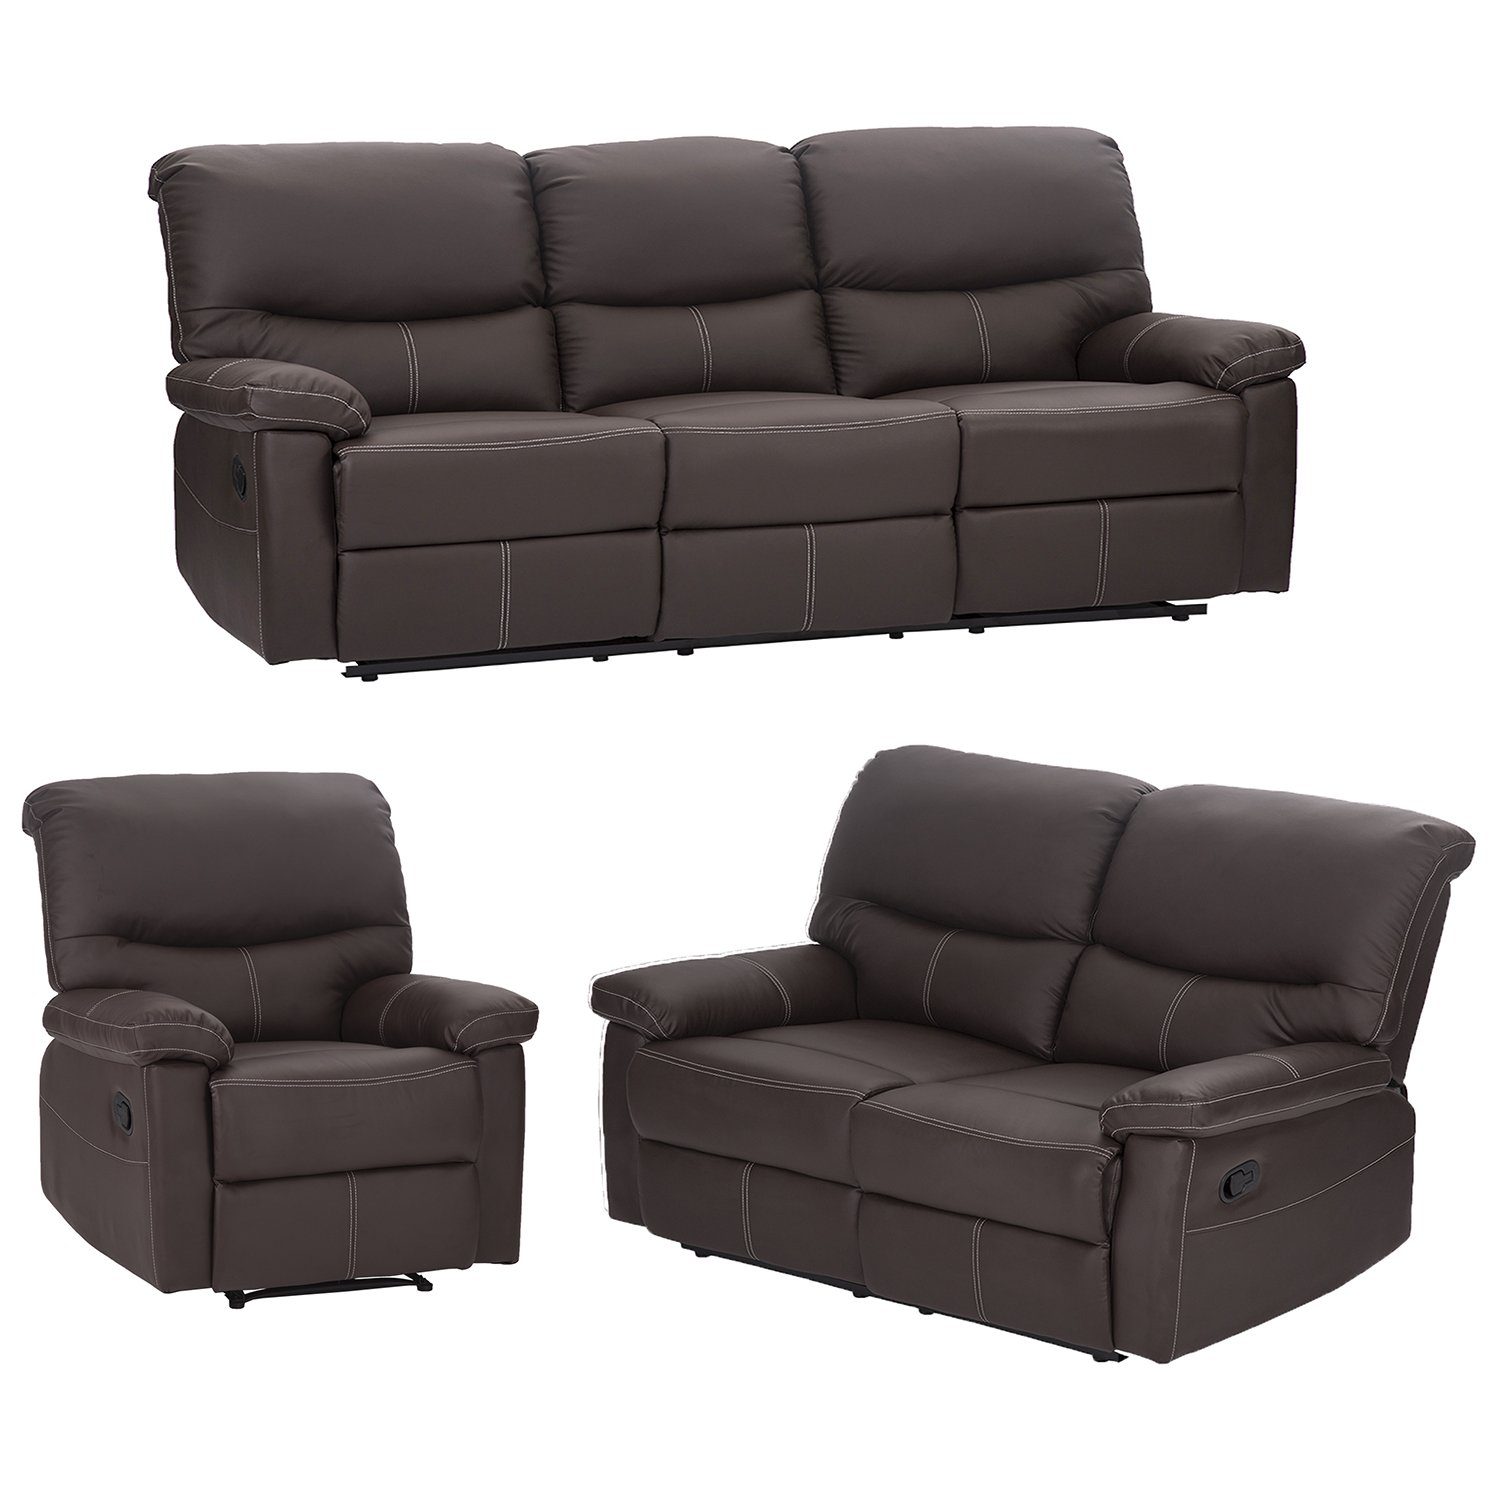 Admirable Buy Bestmassage Living Room Sofa Set Recliner Sofa Reclining Bralicious Painted Fabric Chair Ideas Braliciousco